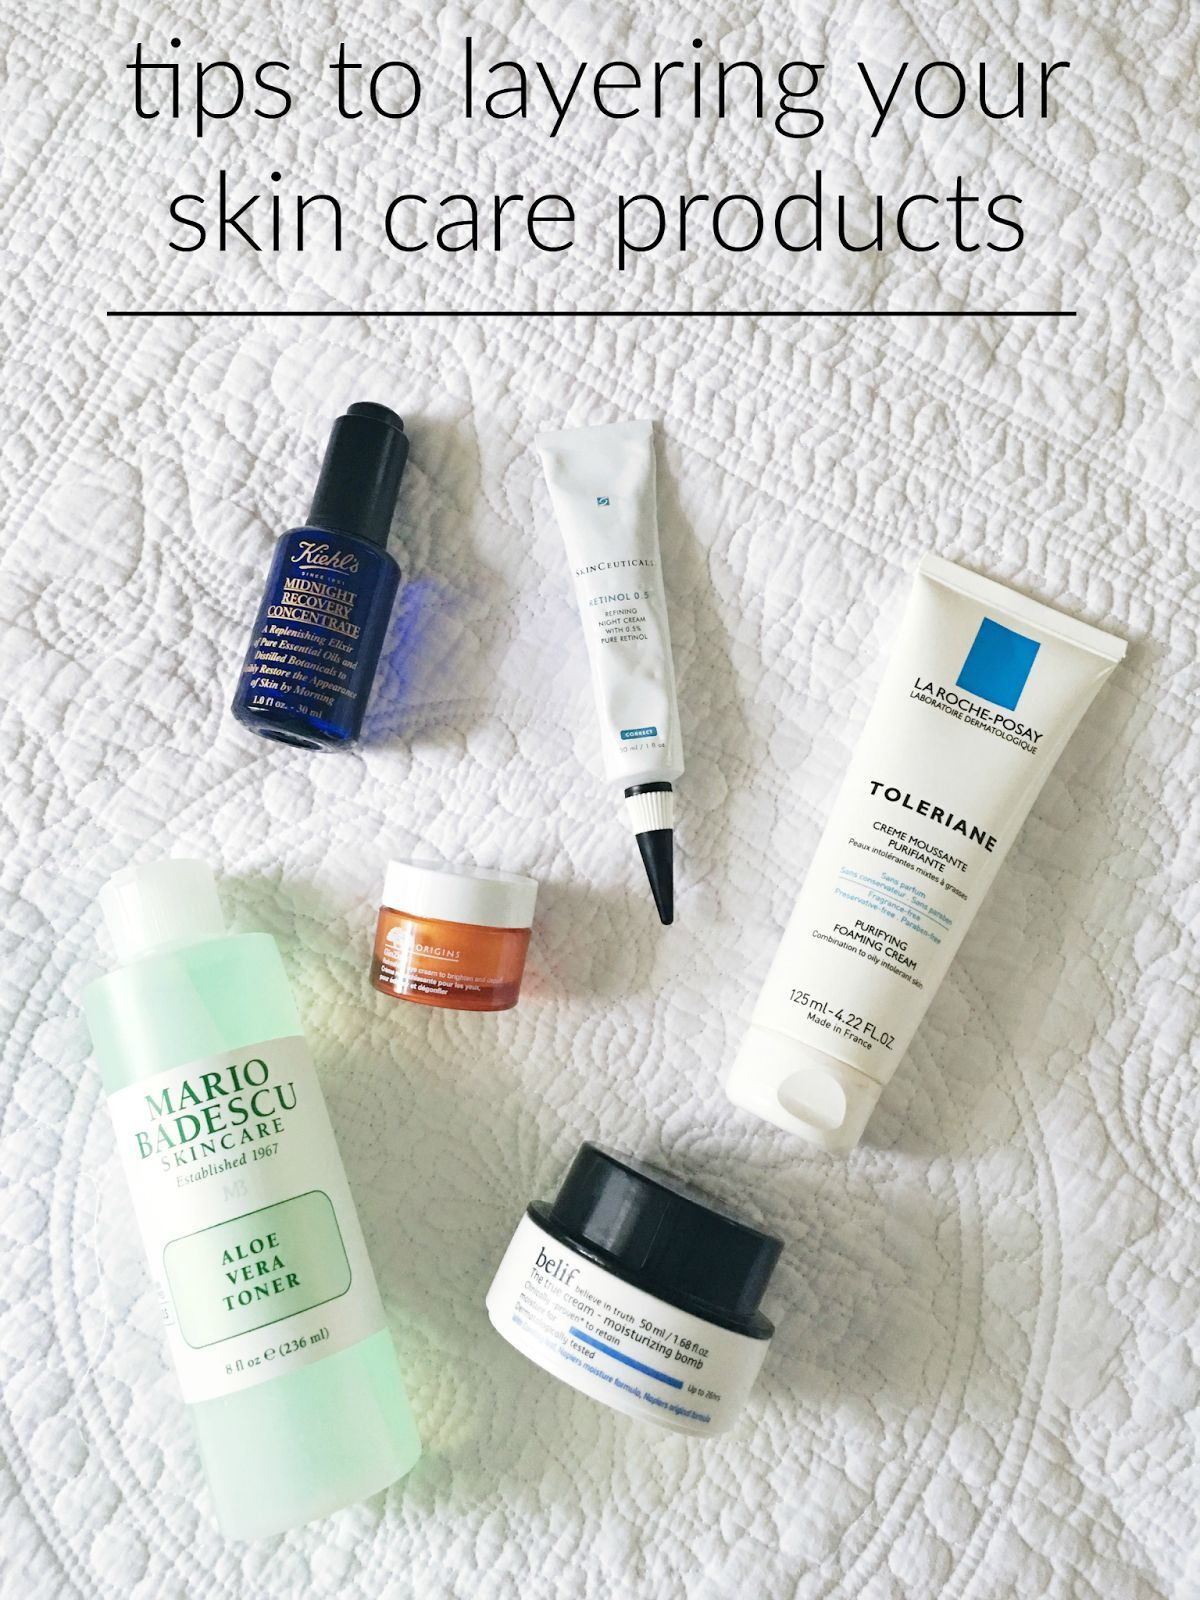 Watch How to Layer Your Skin Care video